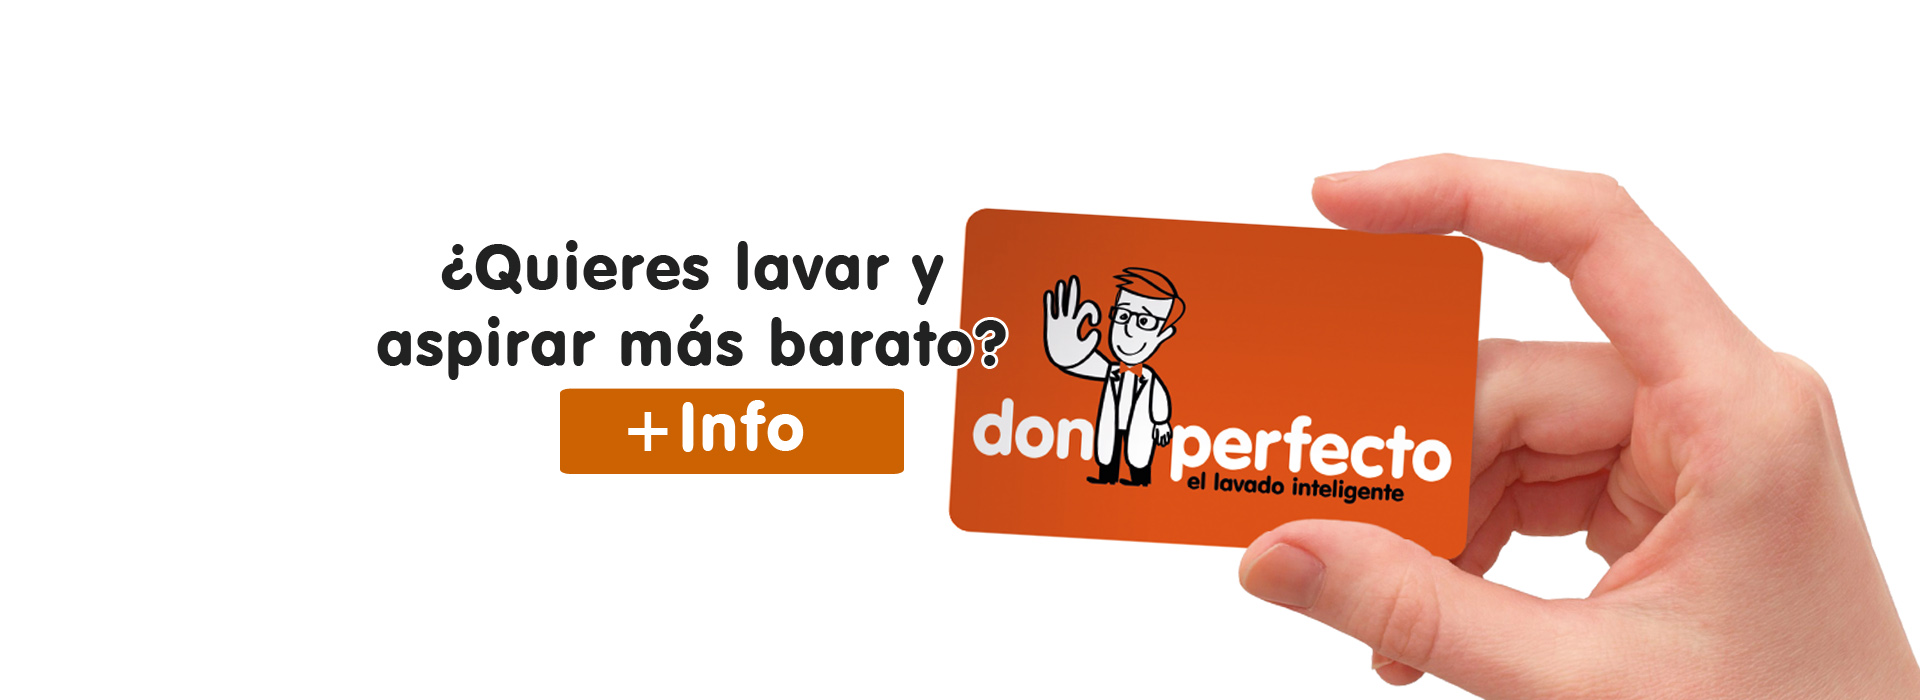 Don-perfecto-autolavado-8